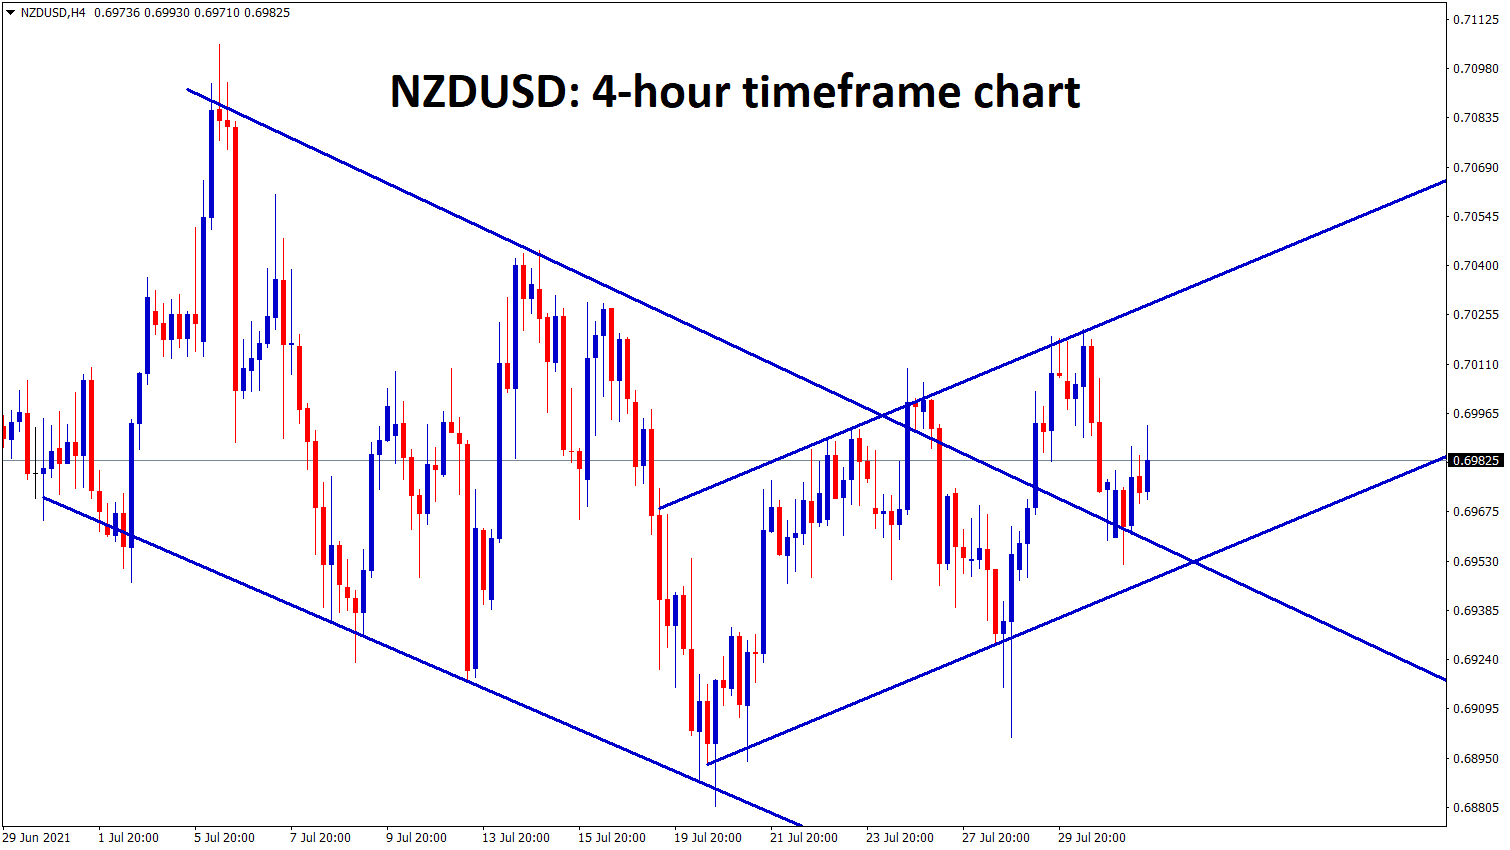 NZDUSD is moving up and down between the channel ranges